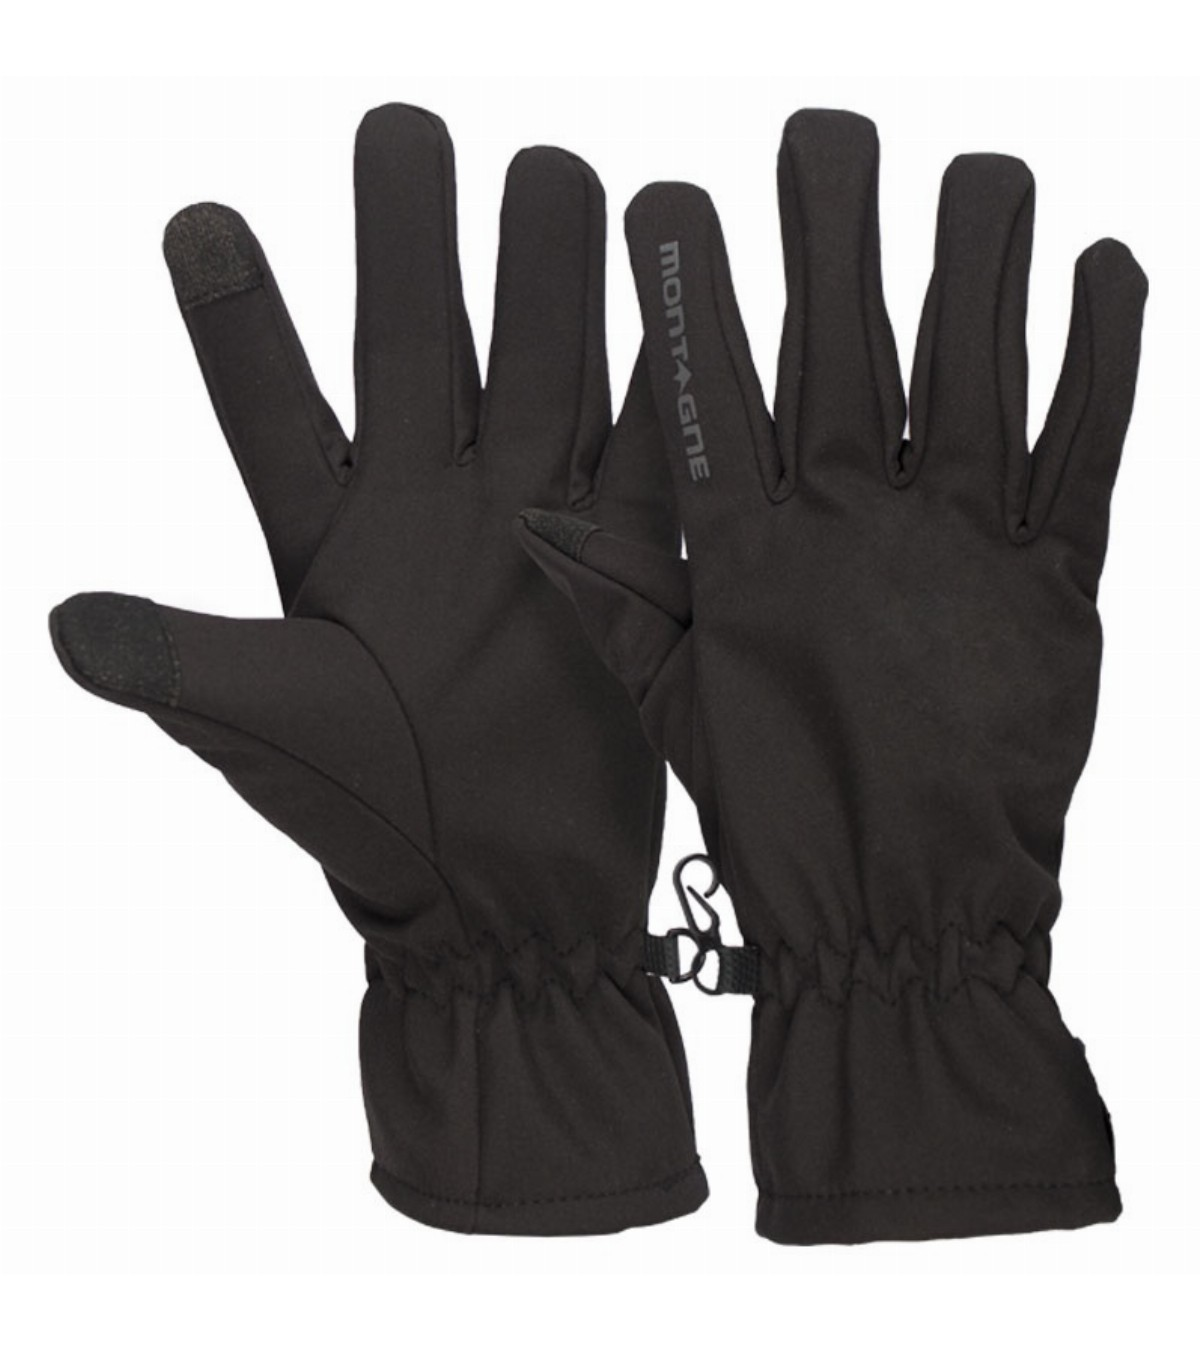 d5efd11418d Guantes Ostfold con touch screen